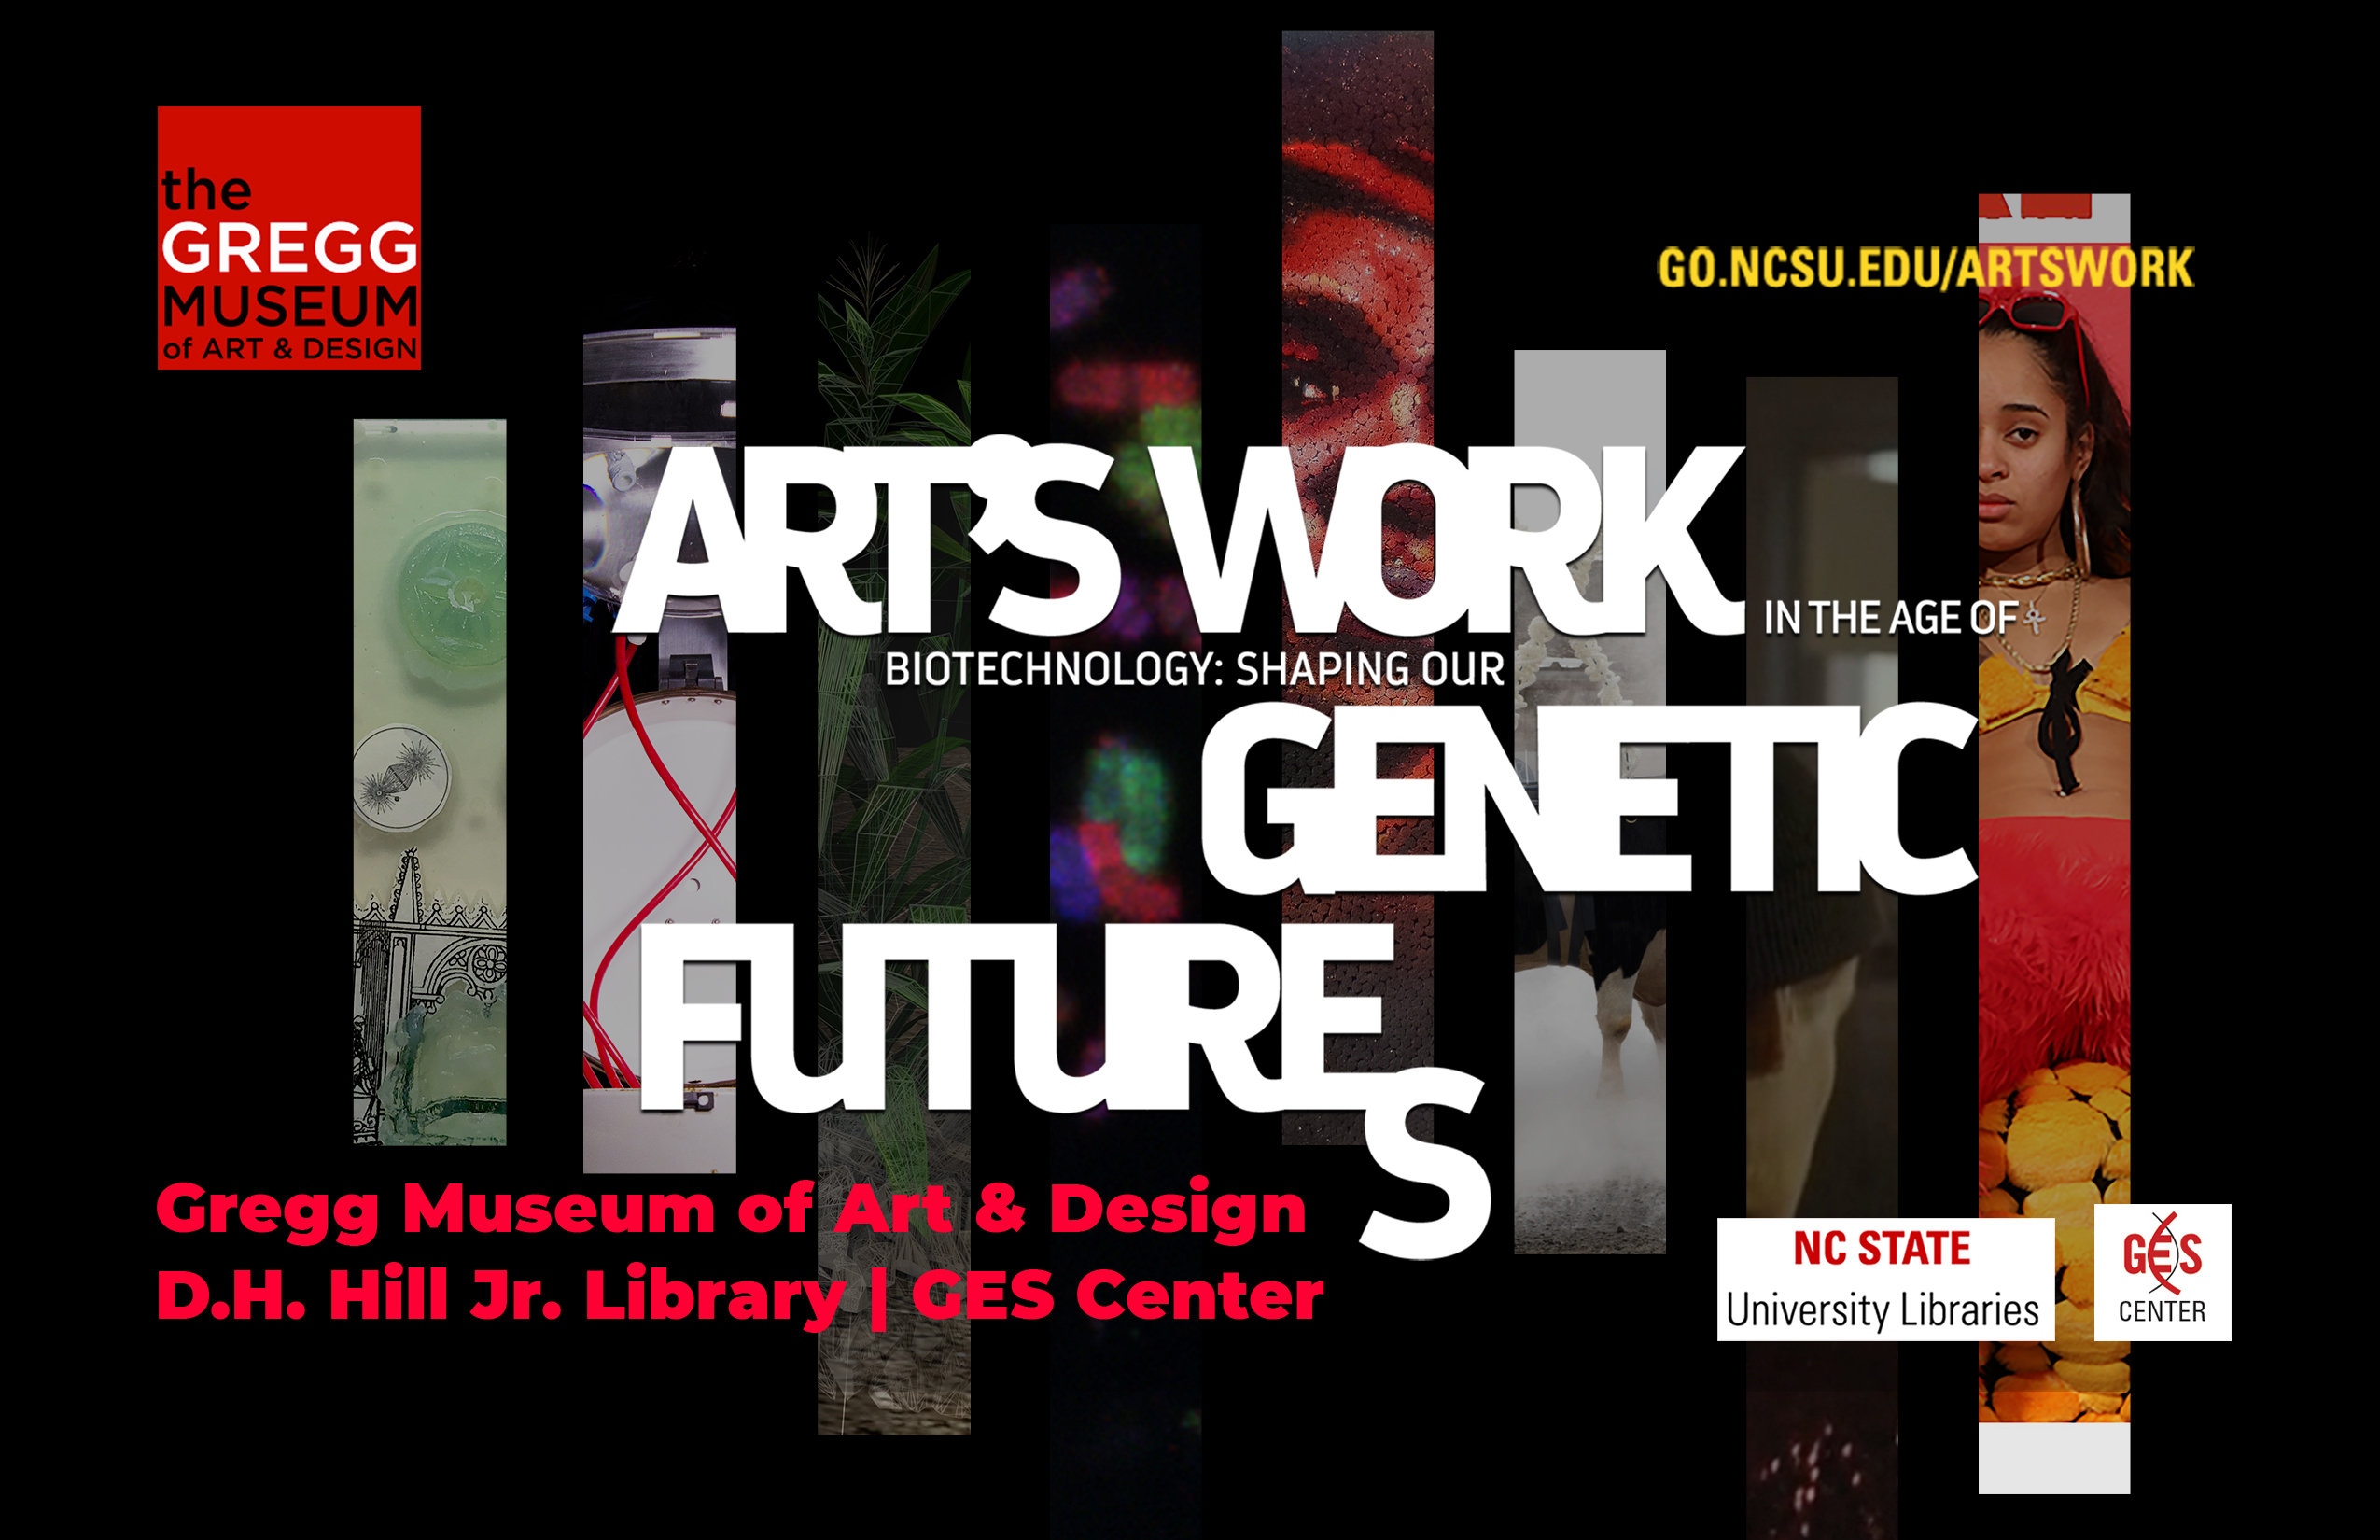 Gallery: Art's Work in the Age of Biotechnology